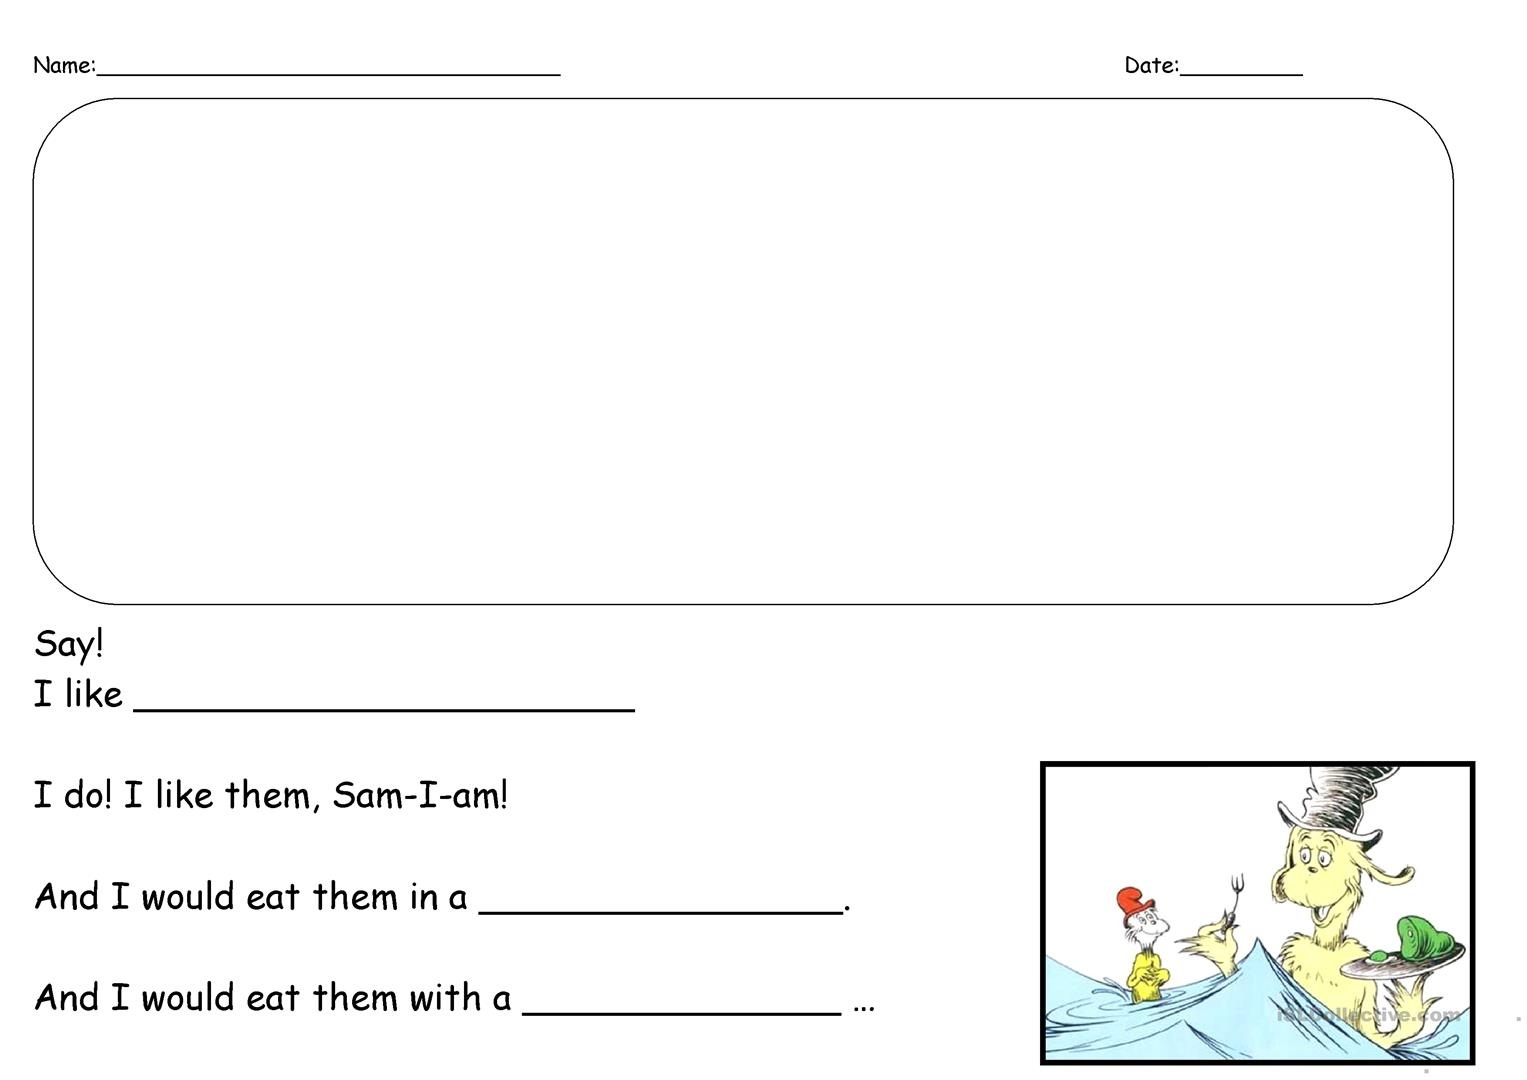 Green Eggs And Ham Writing Prompt Worksheet - Free Esl Printable - Green Eggs And Ham Free Printables